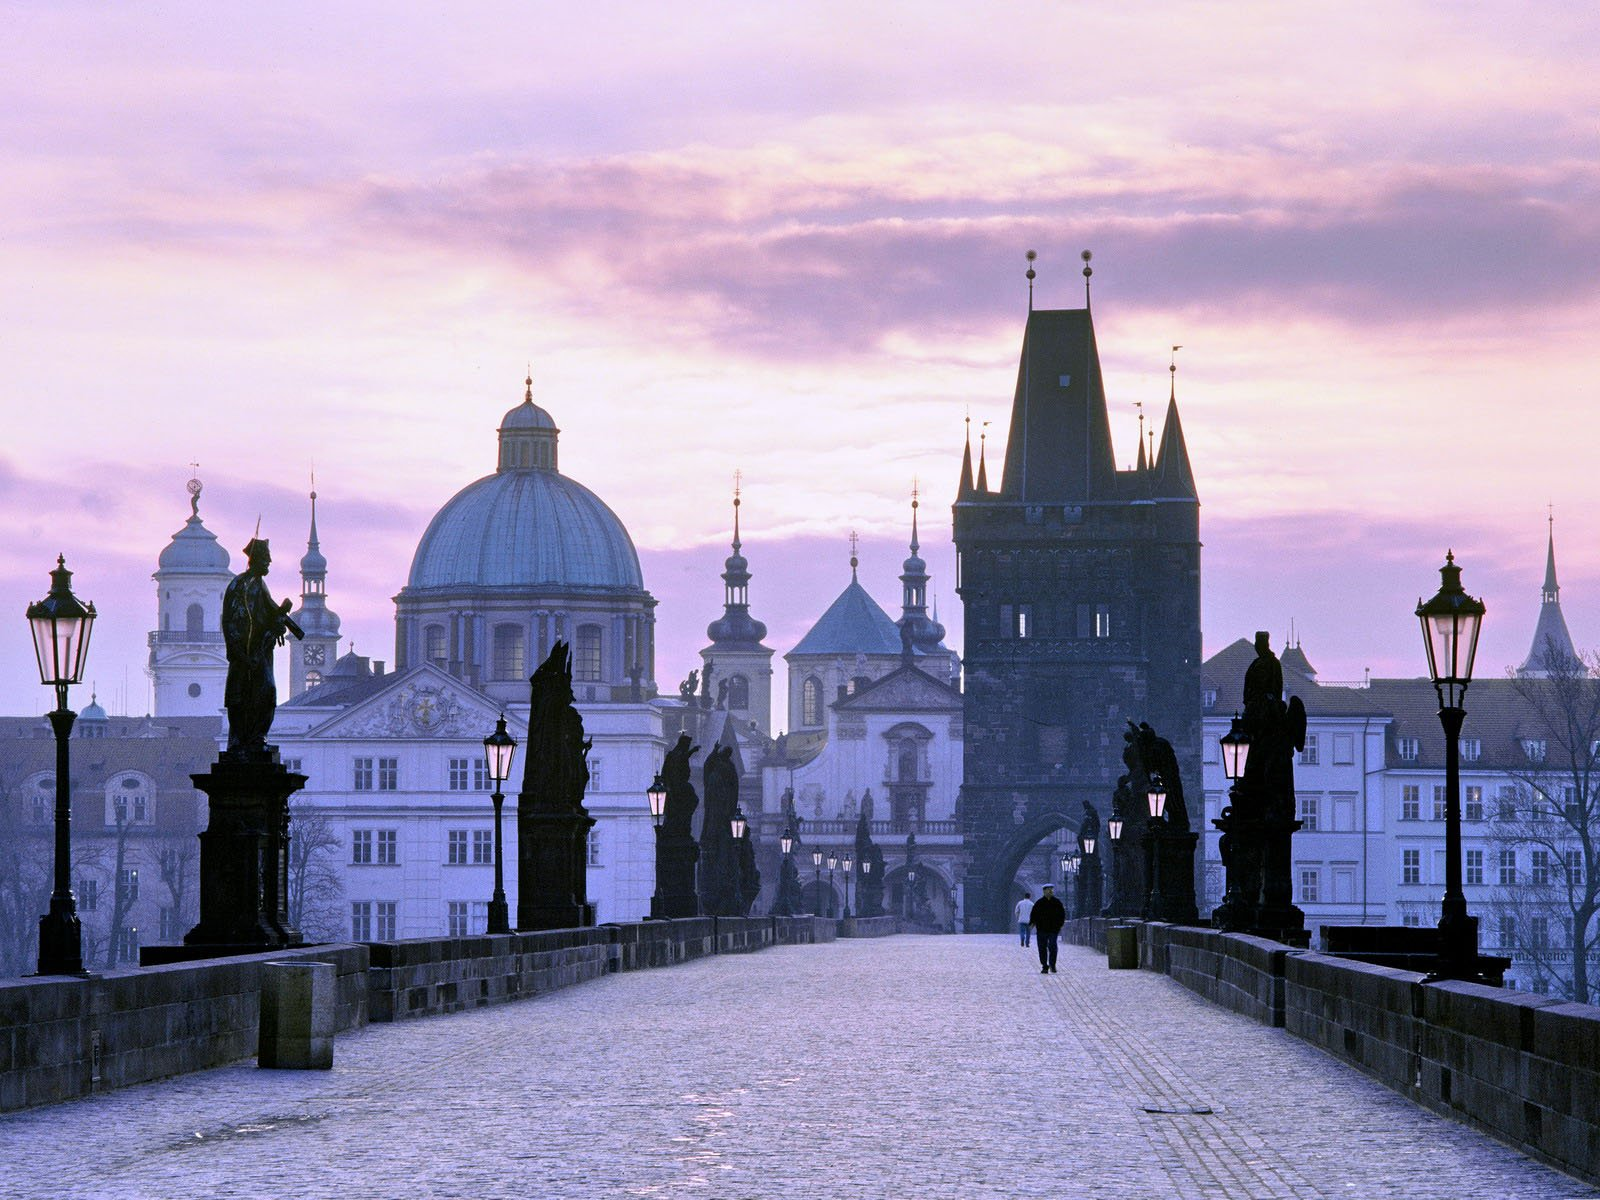 Charles_Bridge_Prague_Wallpaper.jpg?m=1399676400.